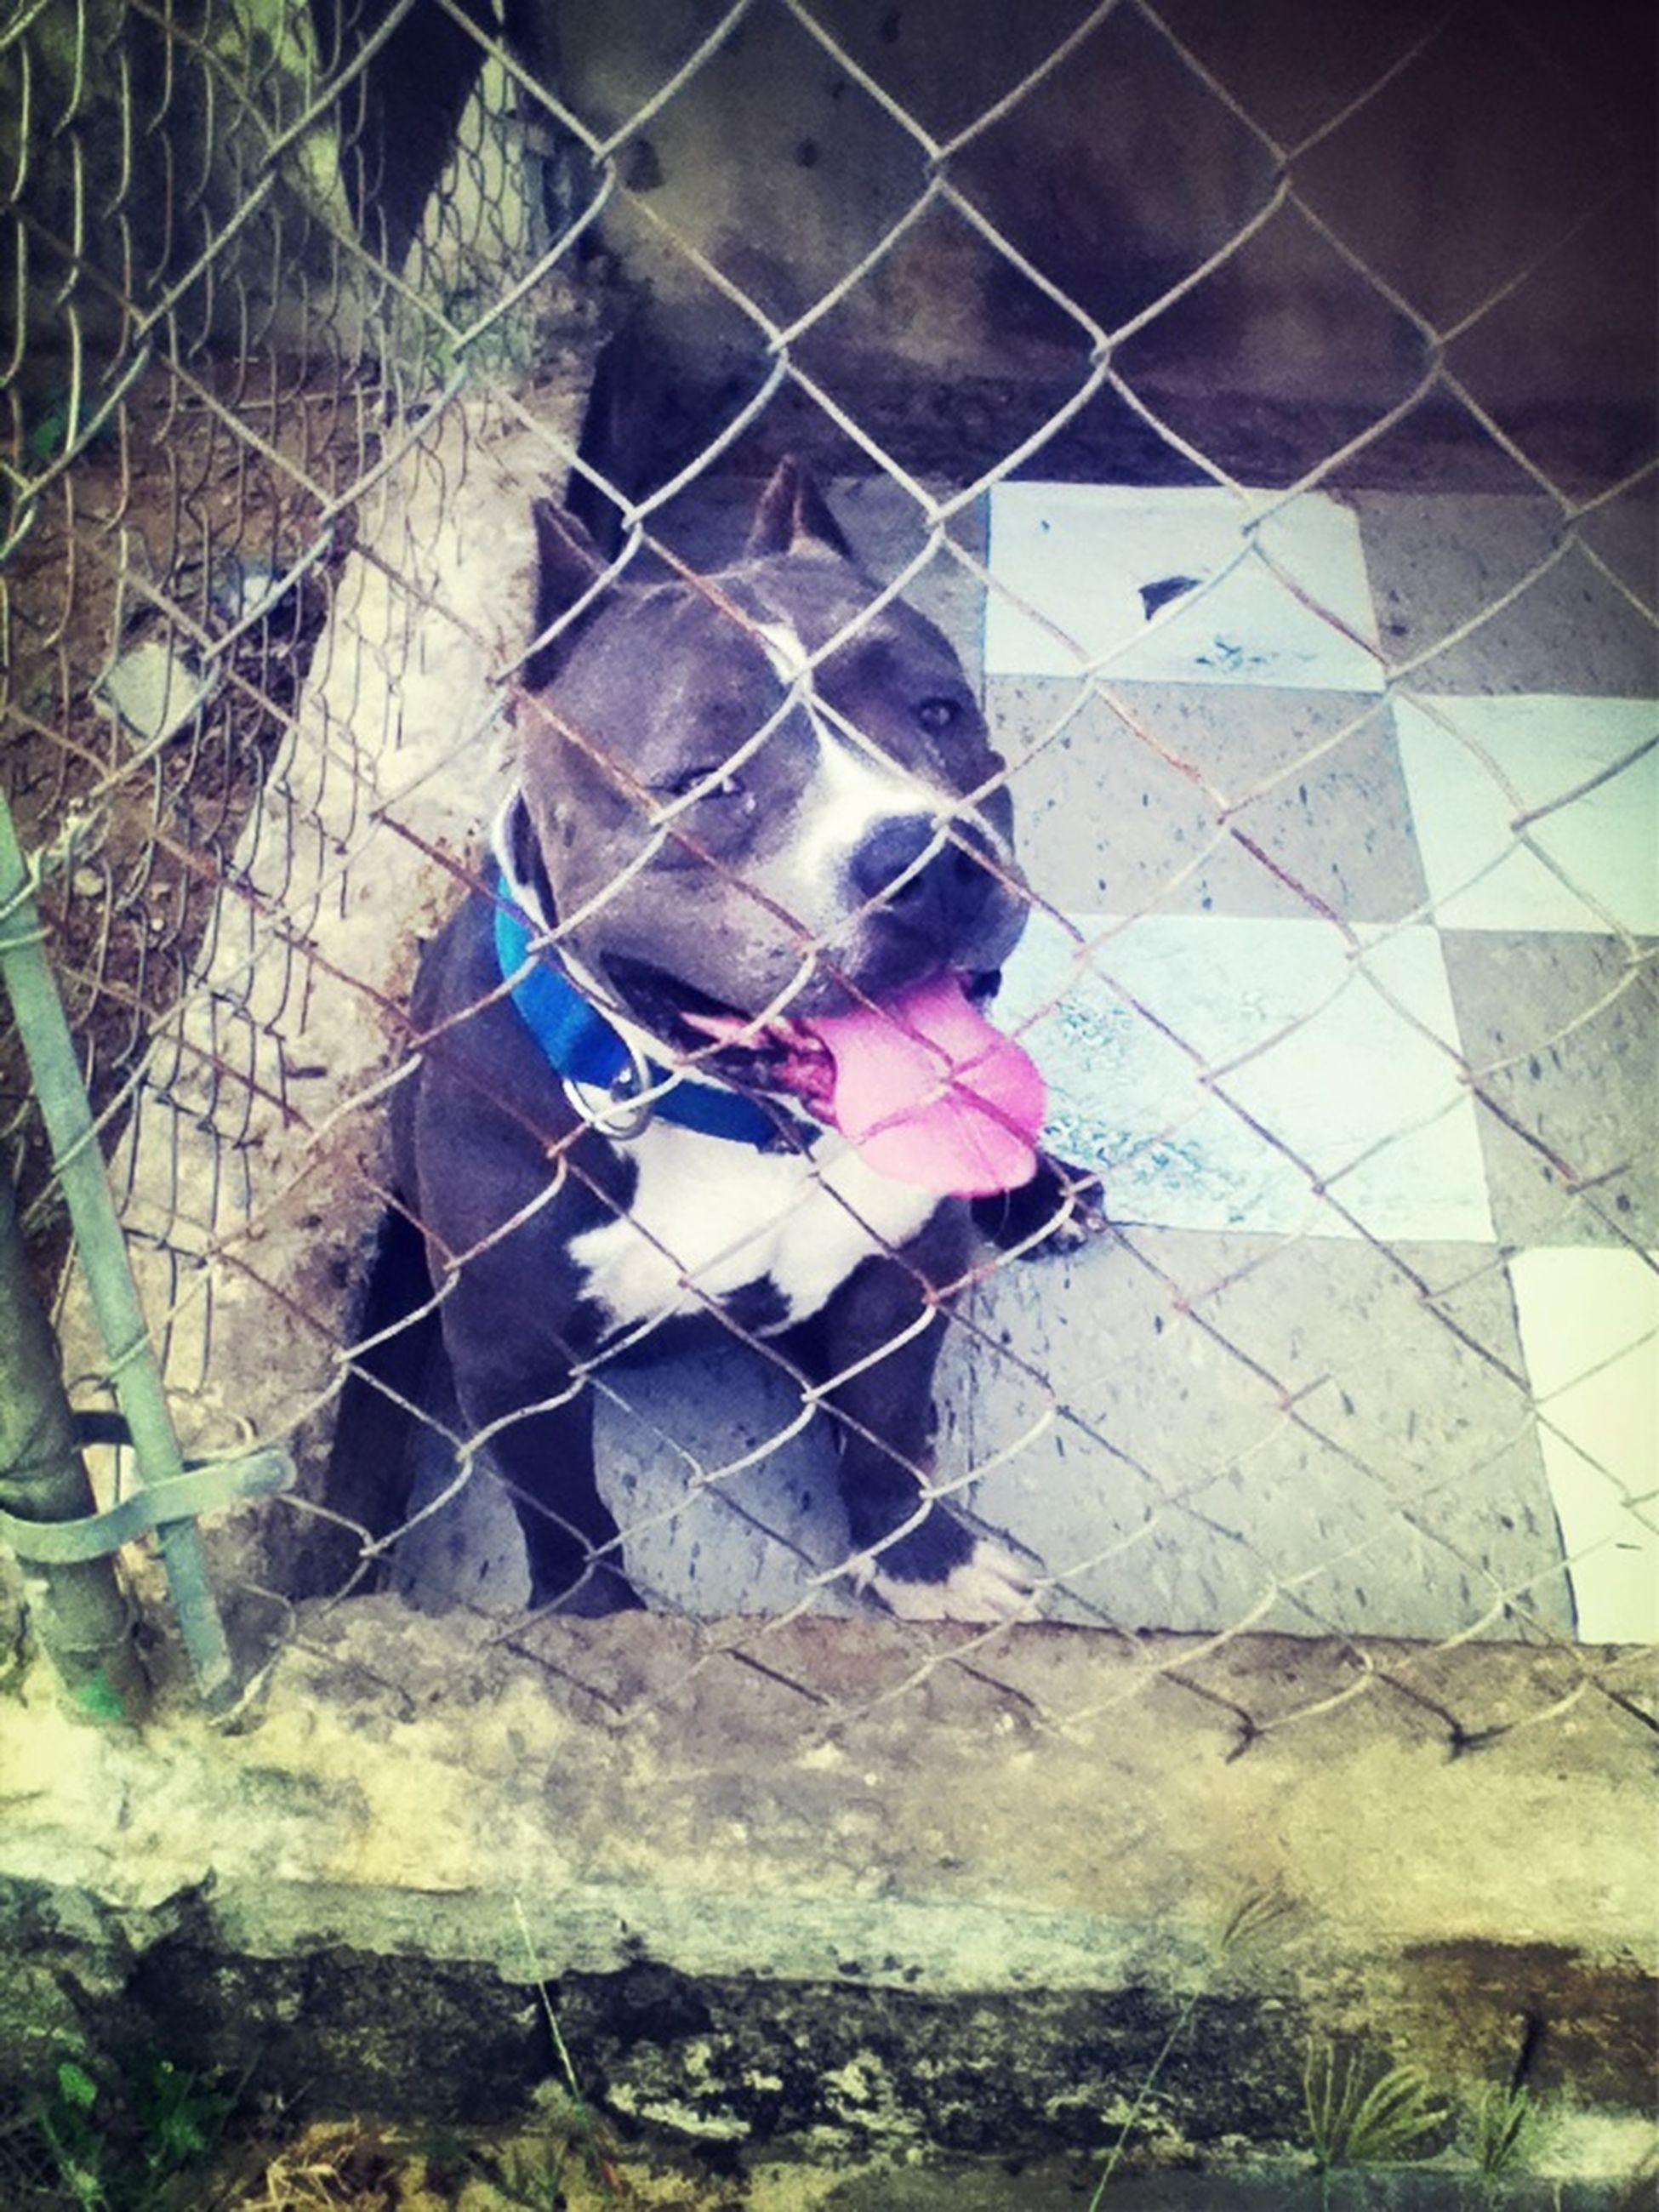 animal themes, one animal, chainlink fence, fence, cage, domestic animals, animals in captivity, protection, metal, mammal, safety, dog, day, metal grate, pets, outdoors, zoo, security, no people, trapped